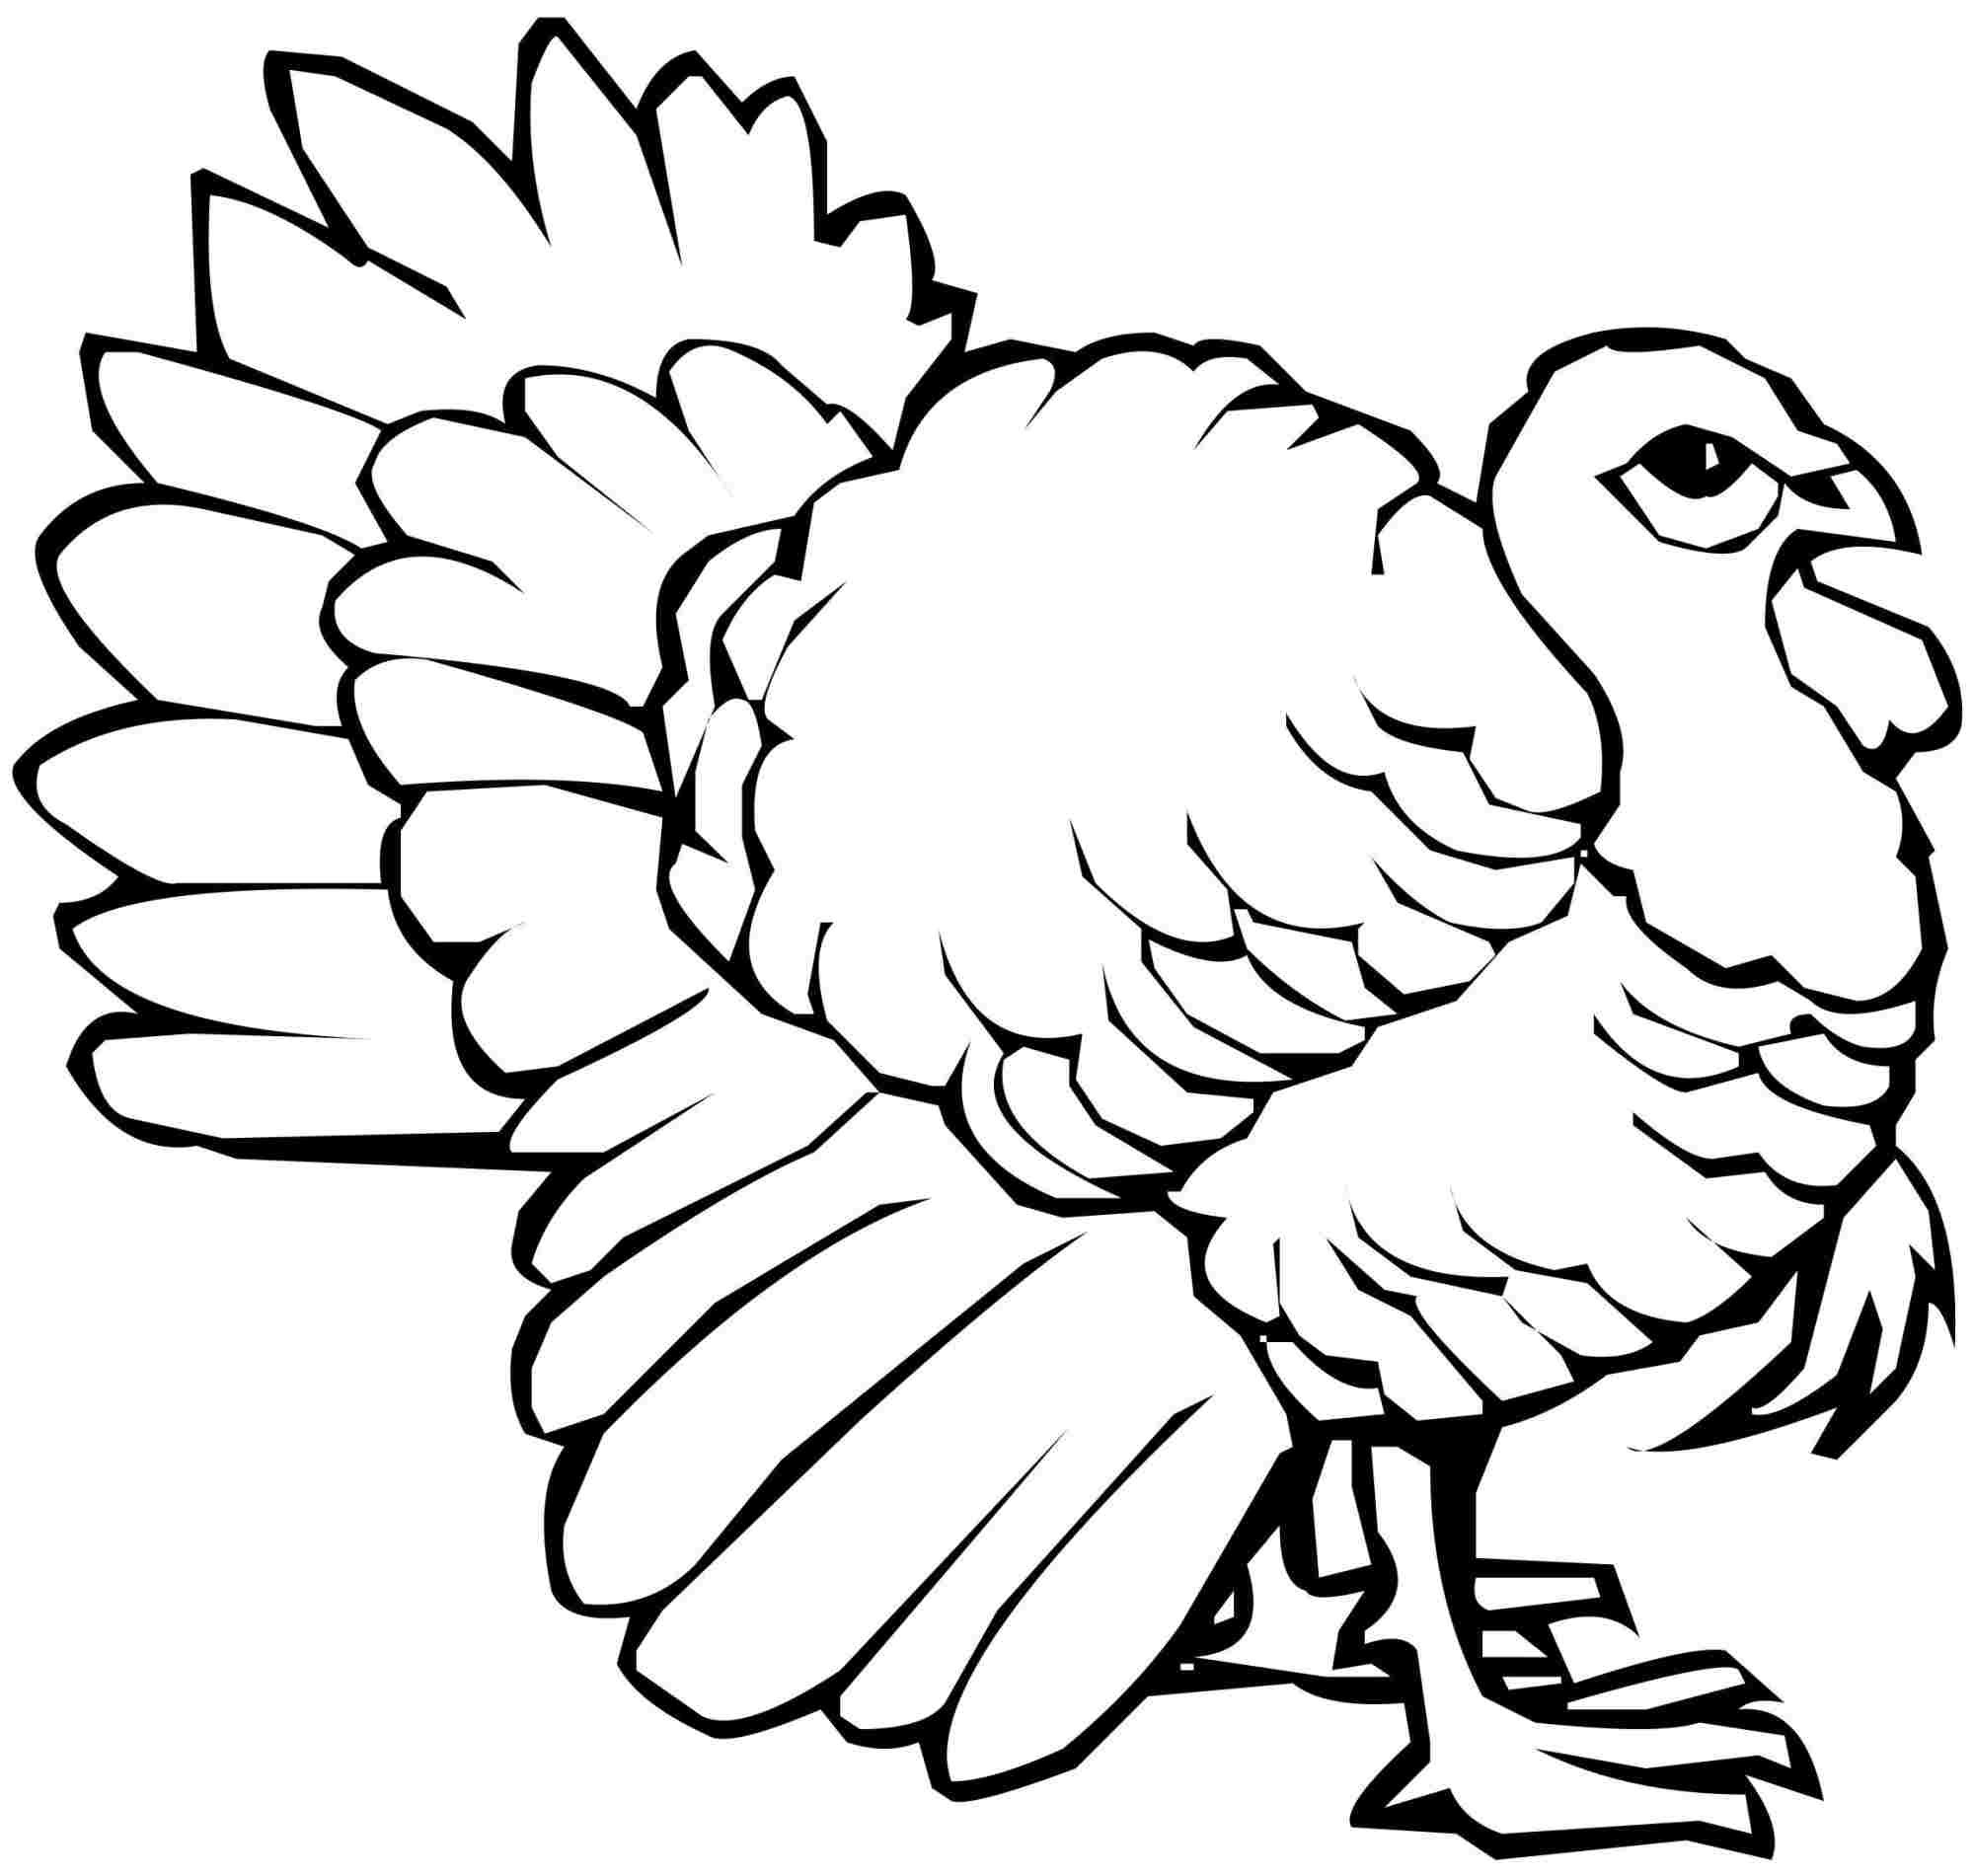 2000x1901 The Truth About Drawings Of Turkeys 3748